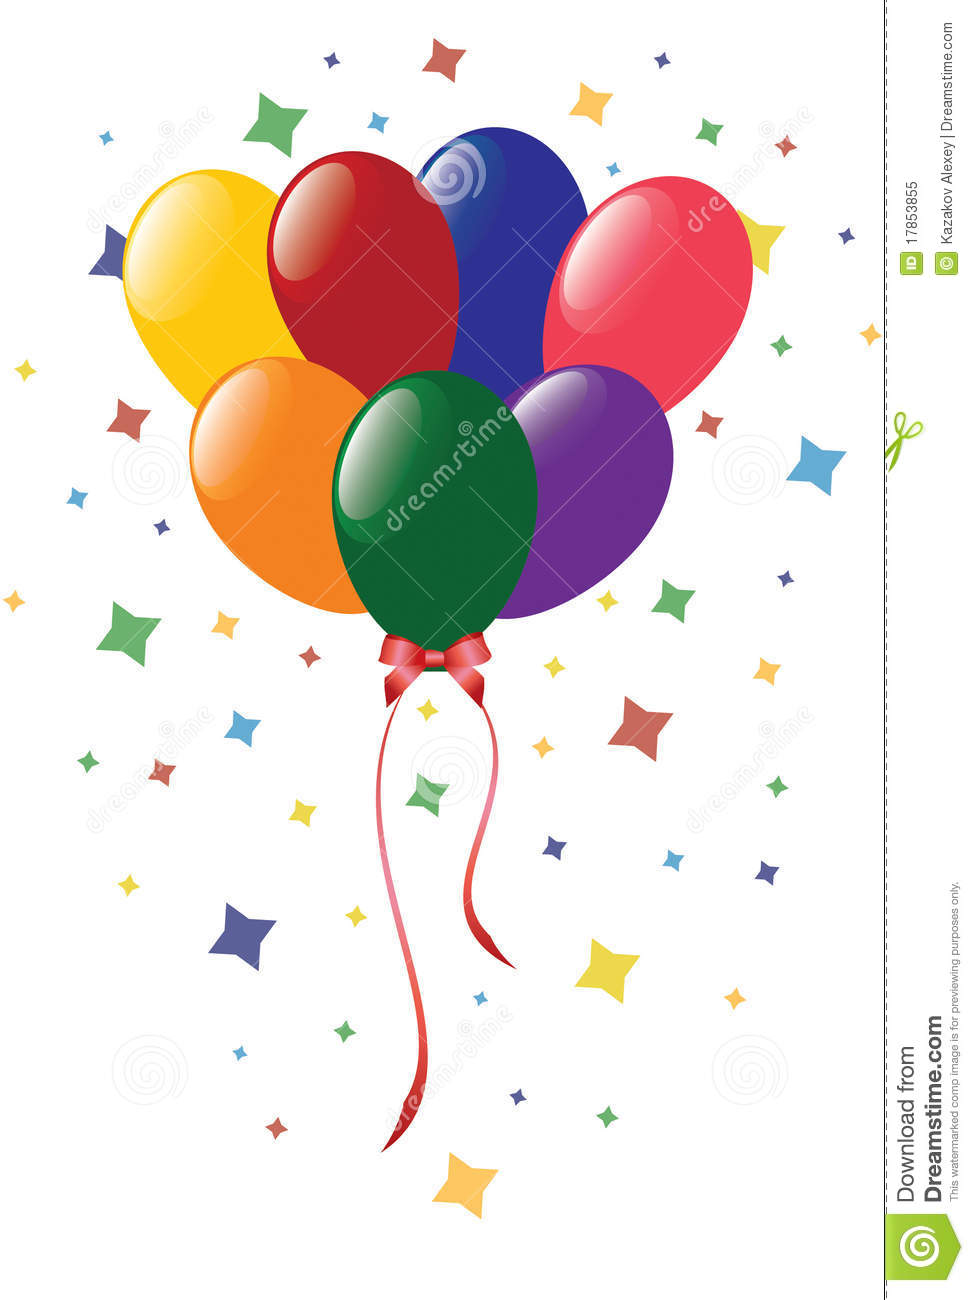 Color Balloons With Confetti Royalty Free Stock Photo - Image ...